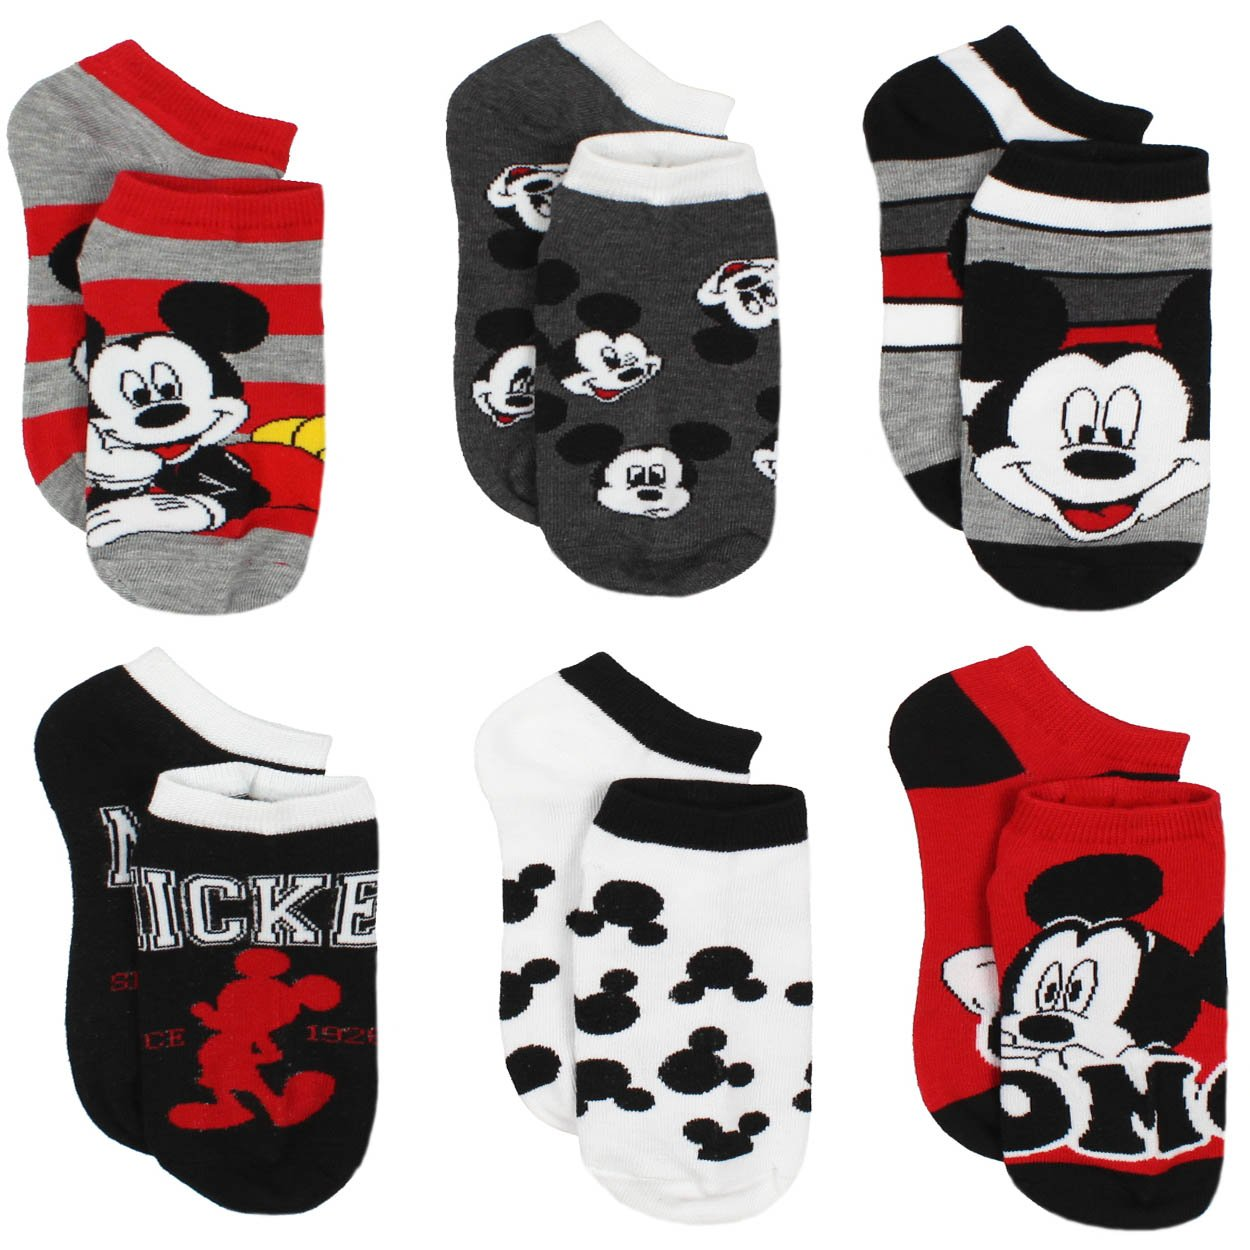 Mickey and Minnie Mouse 6 pack Socks (Toddler/Little Kid/Big Kid/Teen/Adult) manufacturer